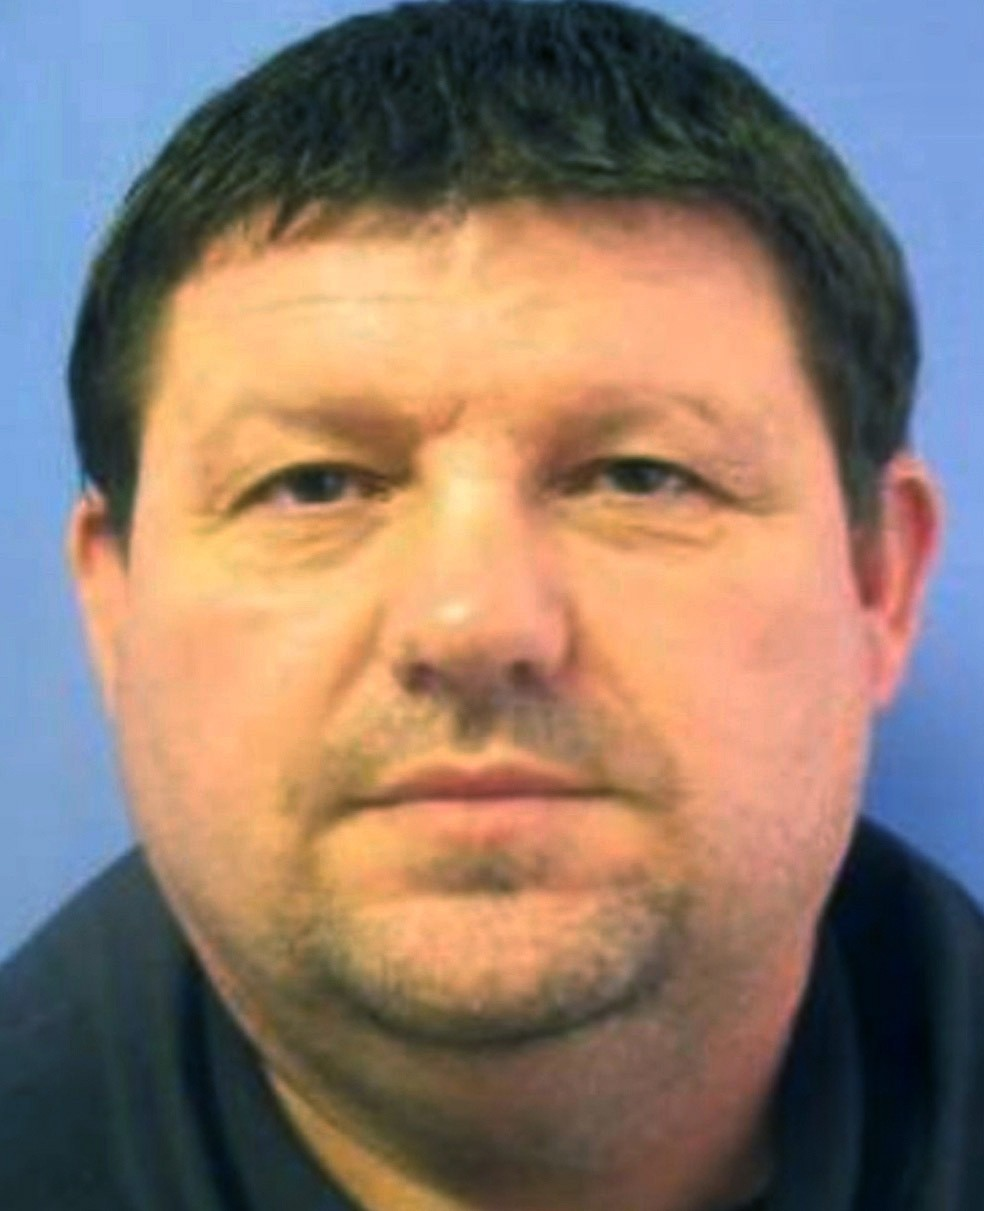 FILE - This image provided by the Mississippi Department of Public Safety shows Webster County Sheriff Timothy (Tim) Seth Mitchell, 53, of Eupora, Mis...